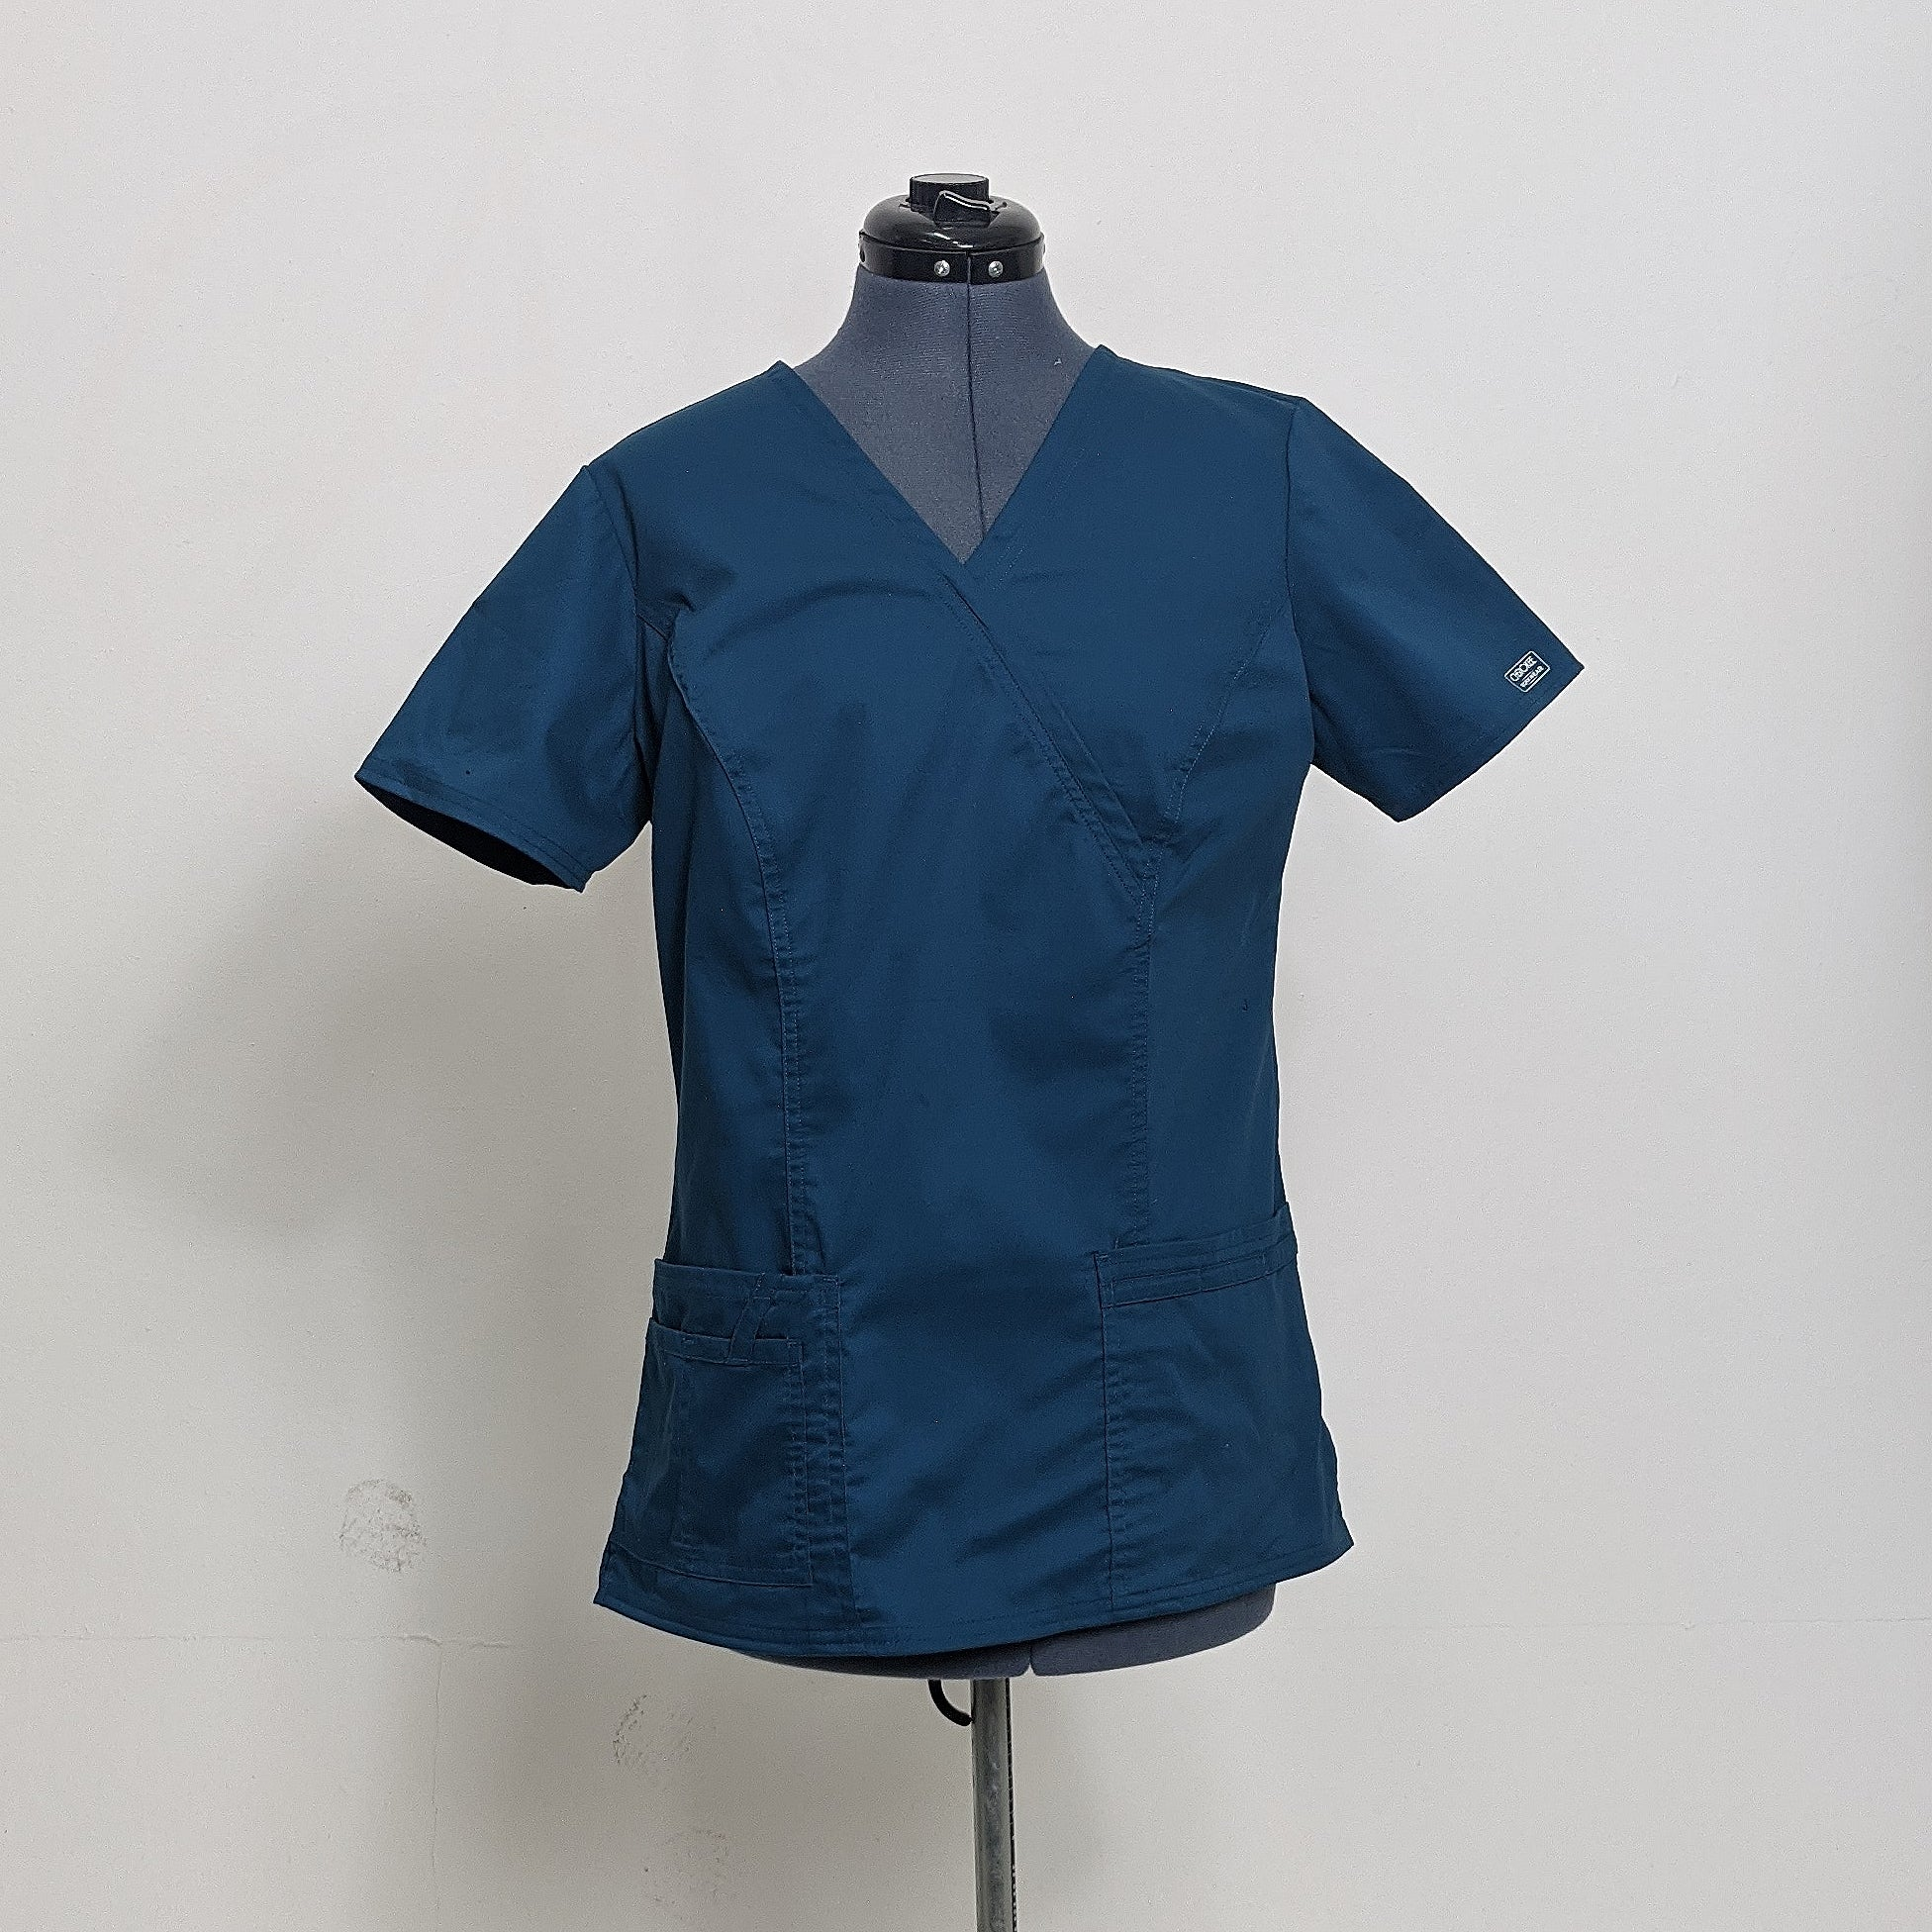 Teal Nurse's Scrubs by Cherokee